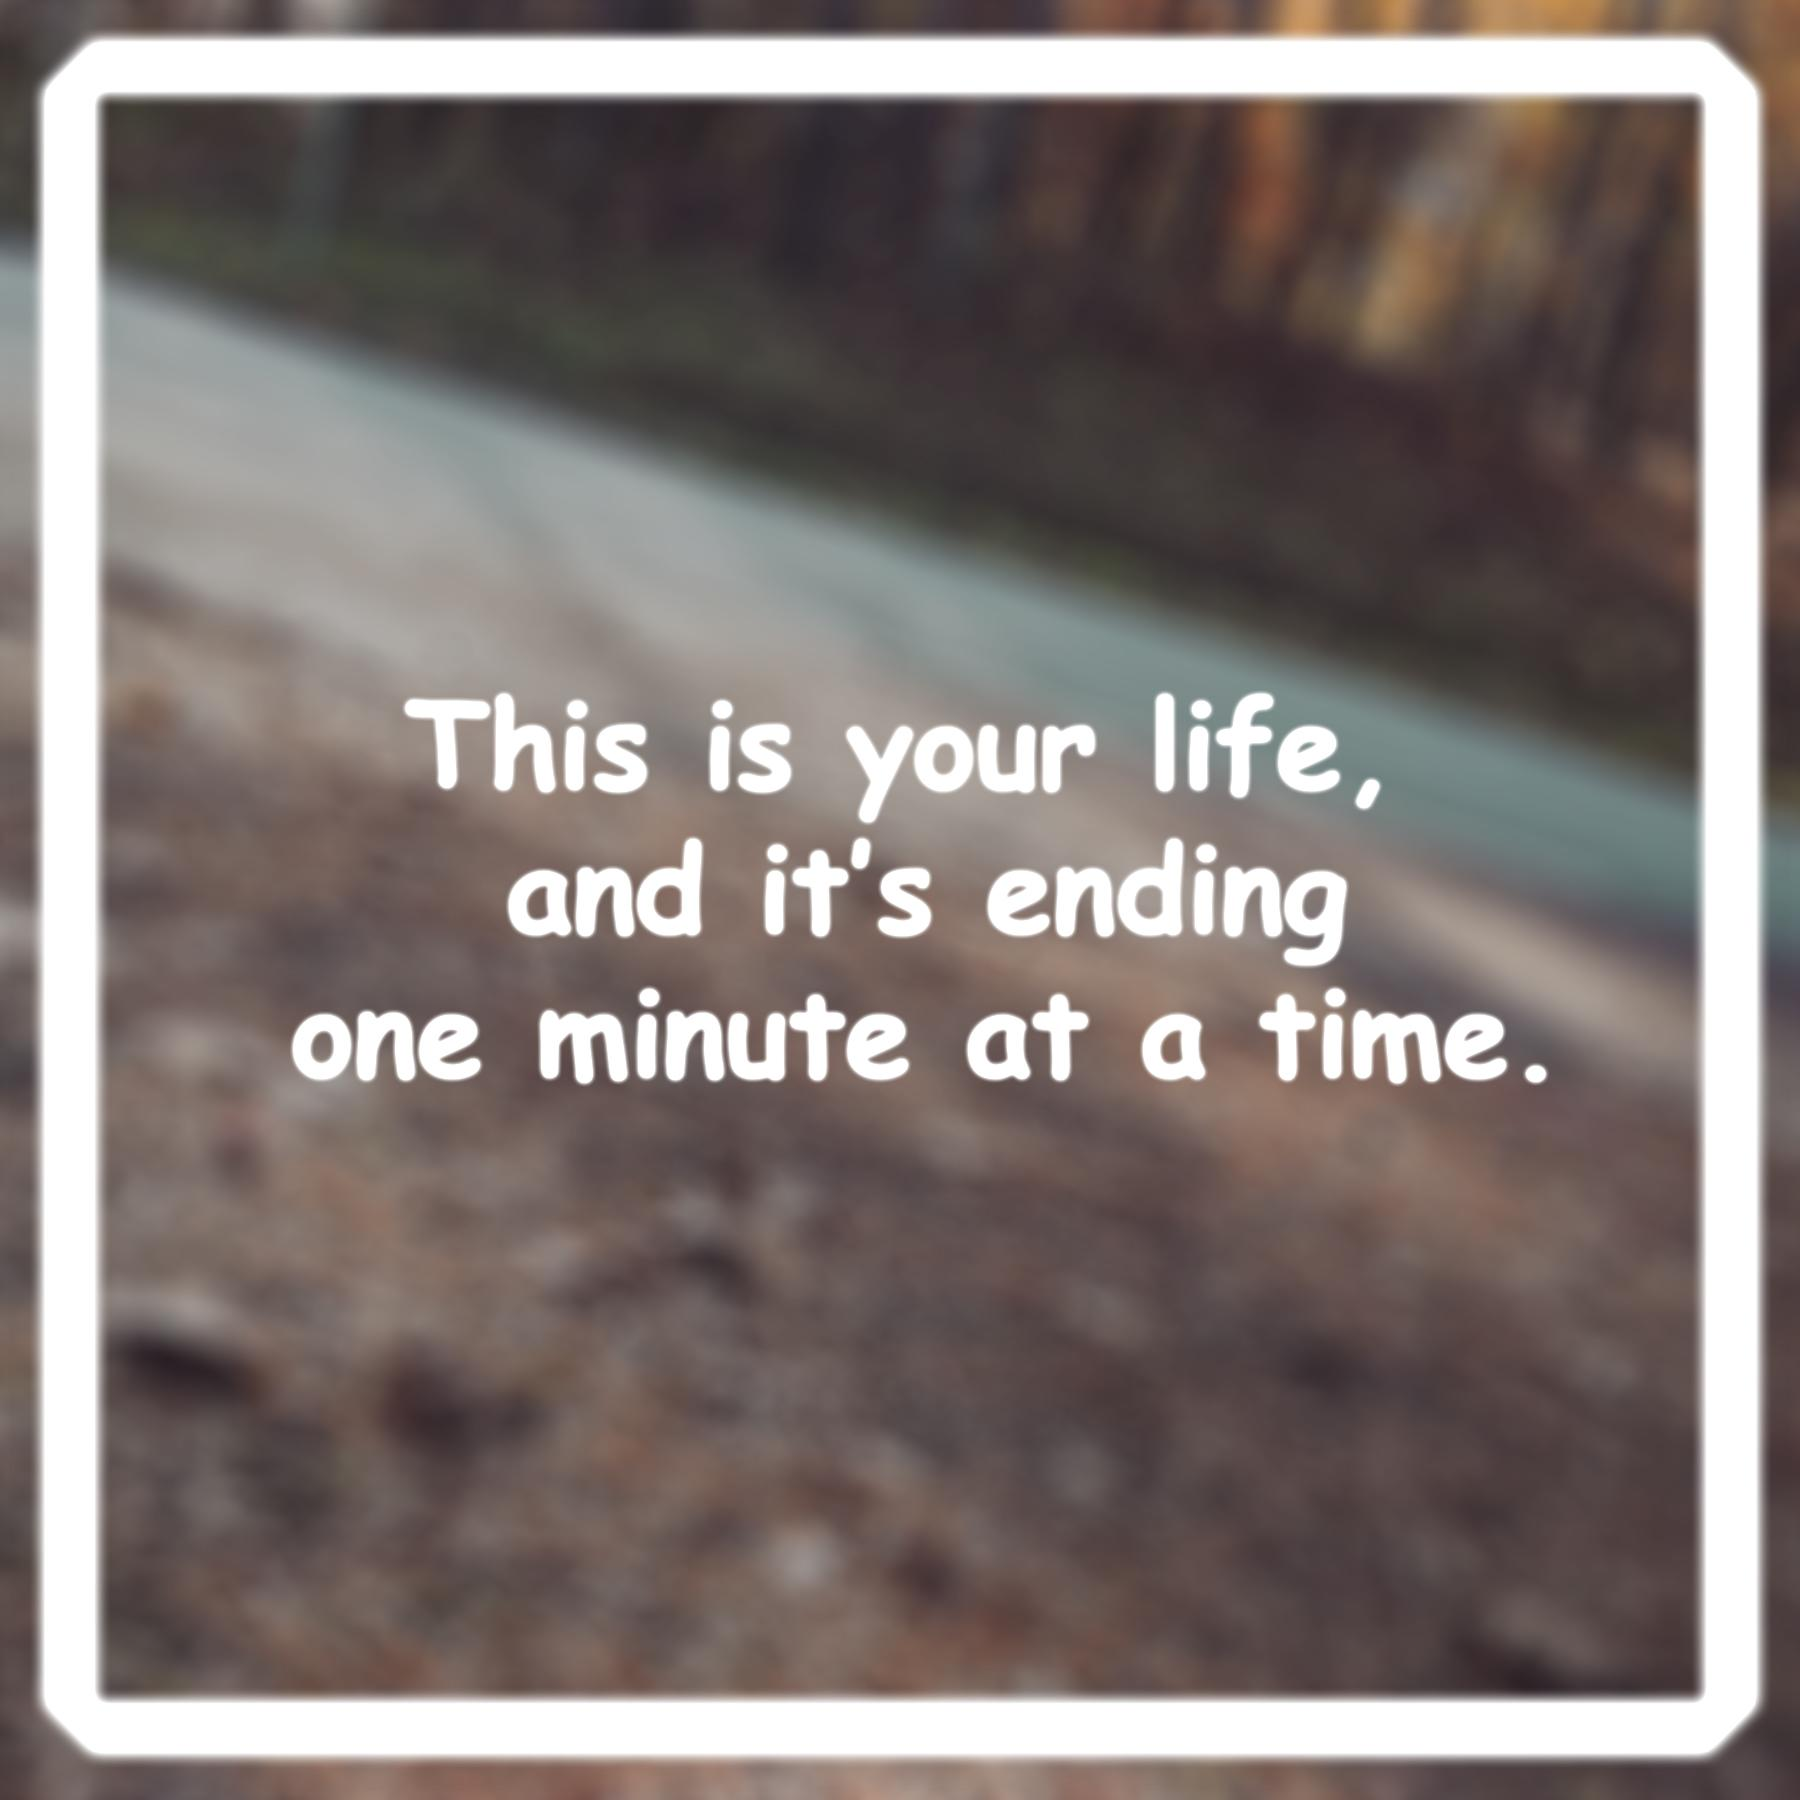 [Image] Take every minute in your life as it was your last.